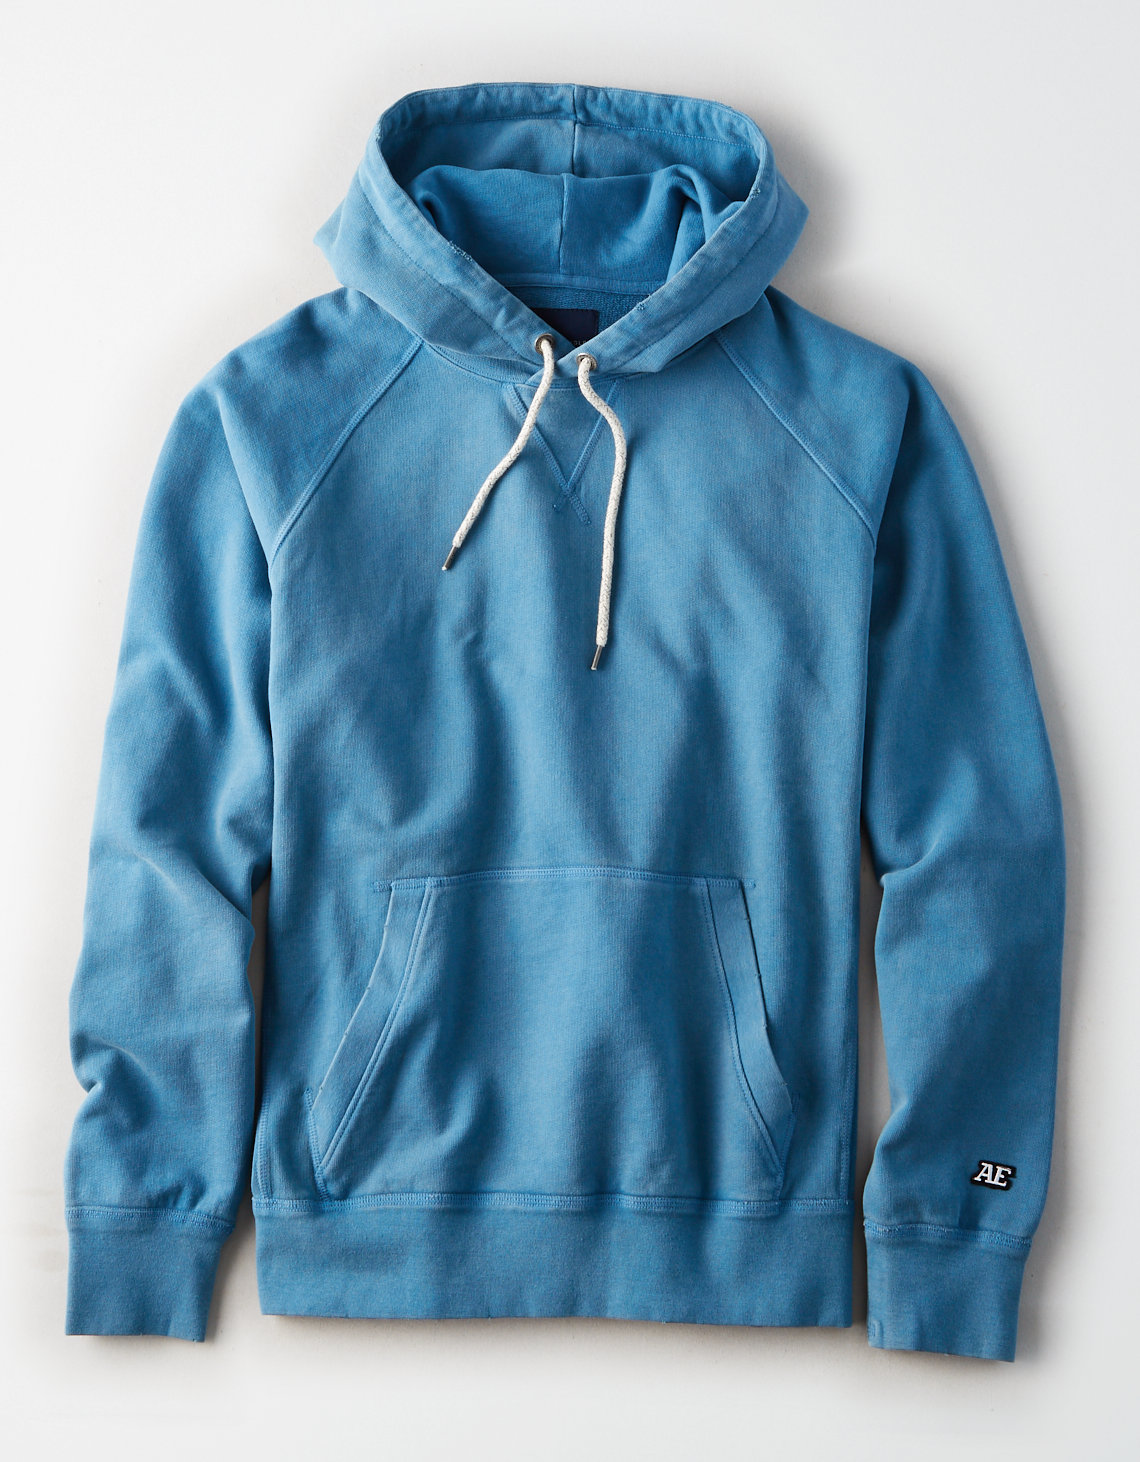 9d8c52aab59bcb AE Pullover Hoodie. Placeholder image. Product Image